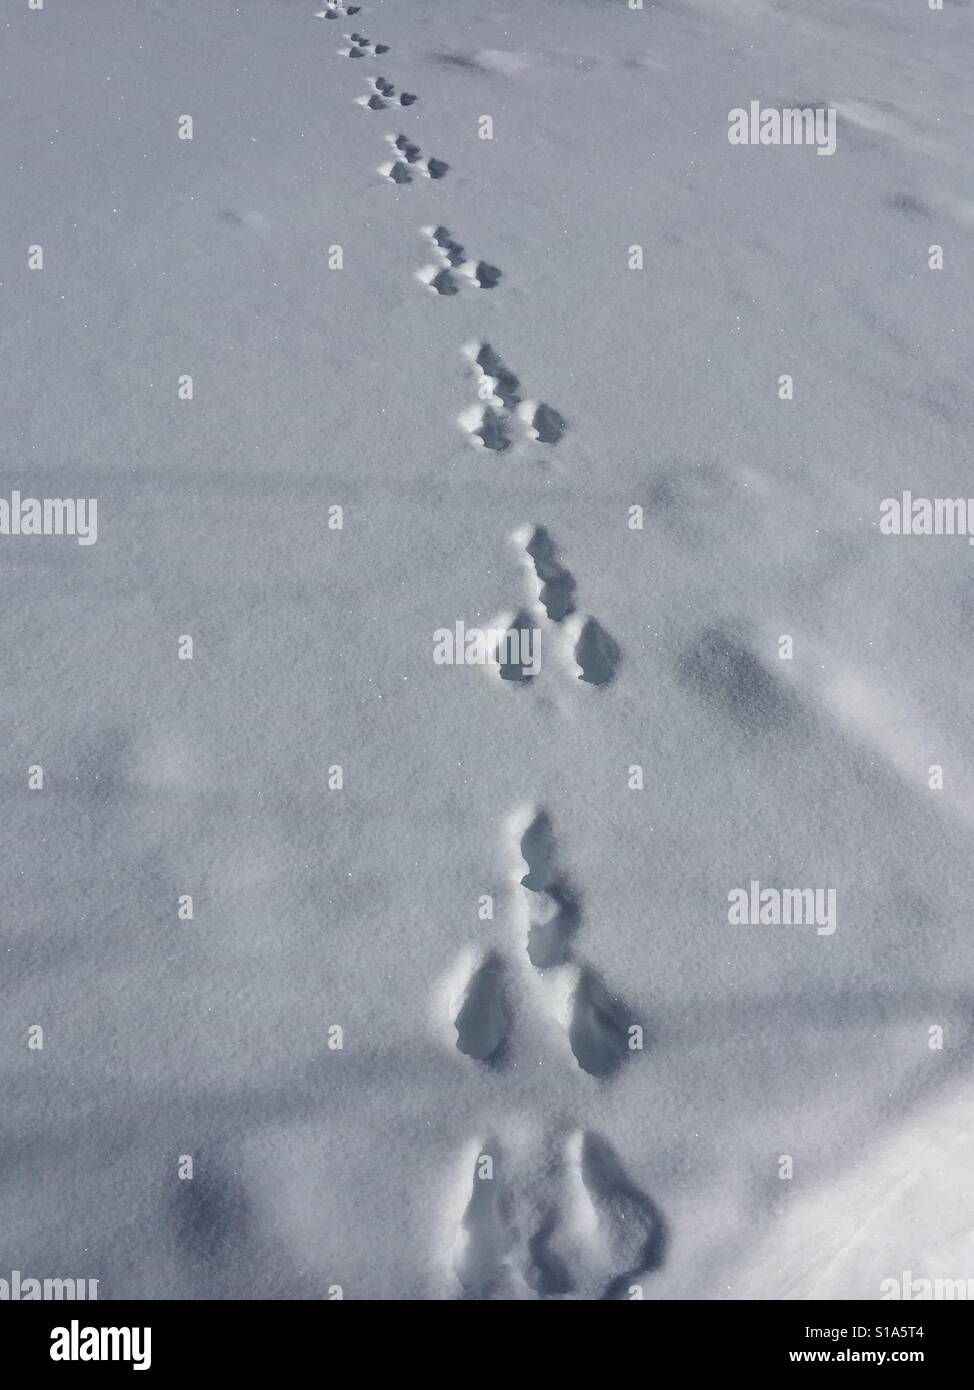 Tracks in the snow - Stock Image